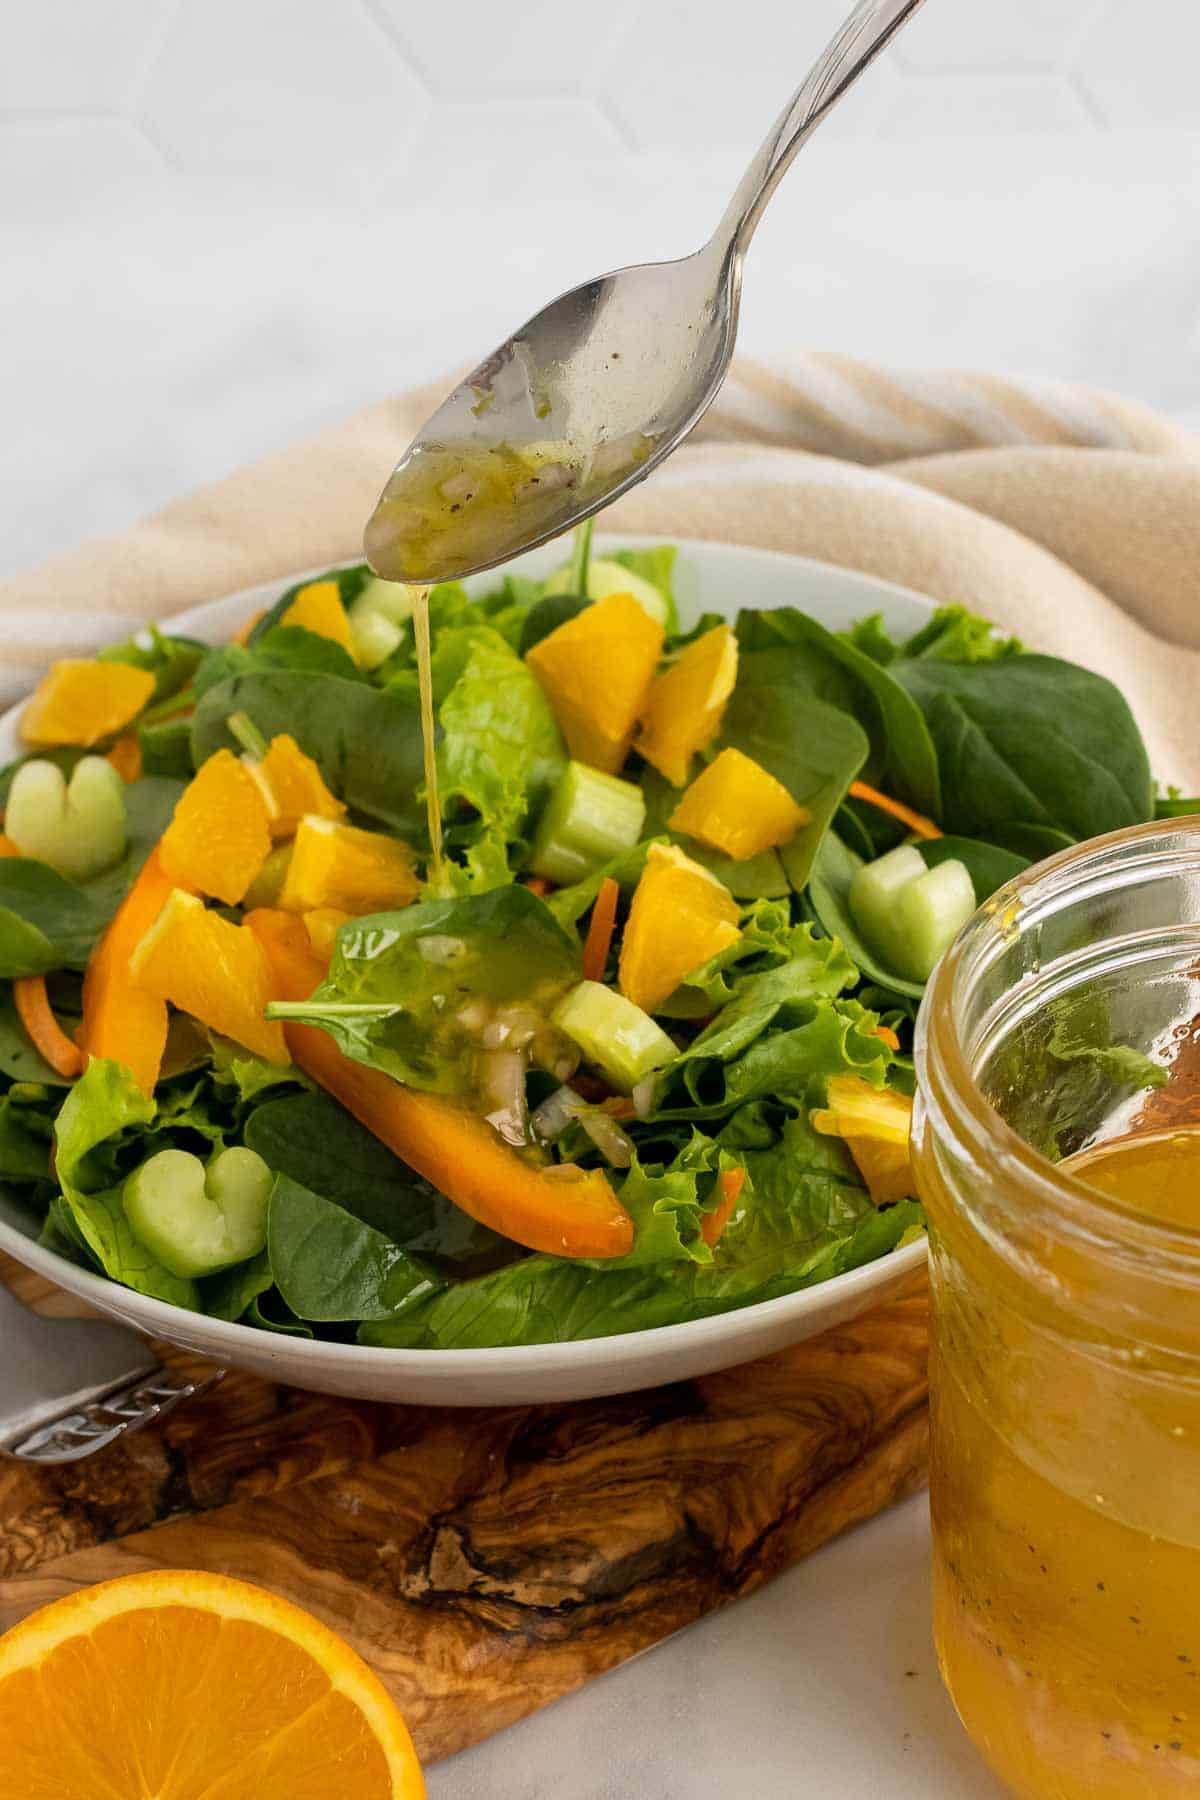 Spoon drizzling vinaigrette over a spinach salad